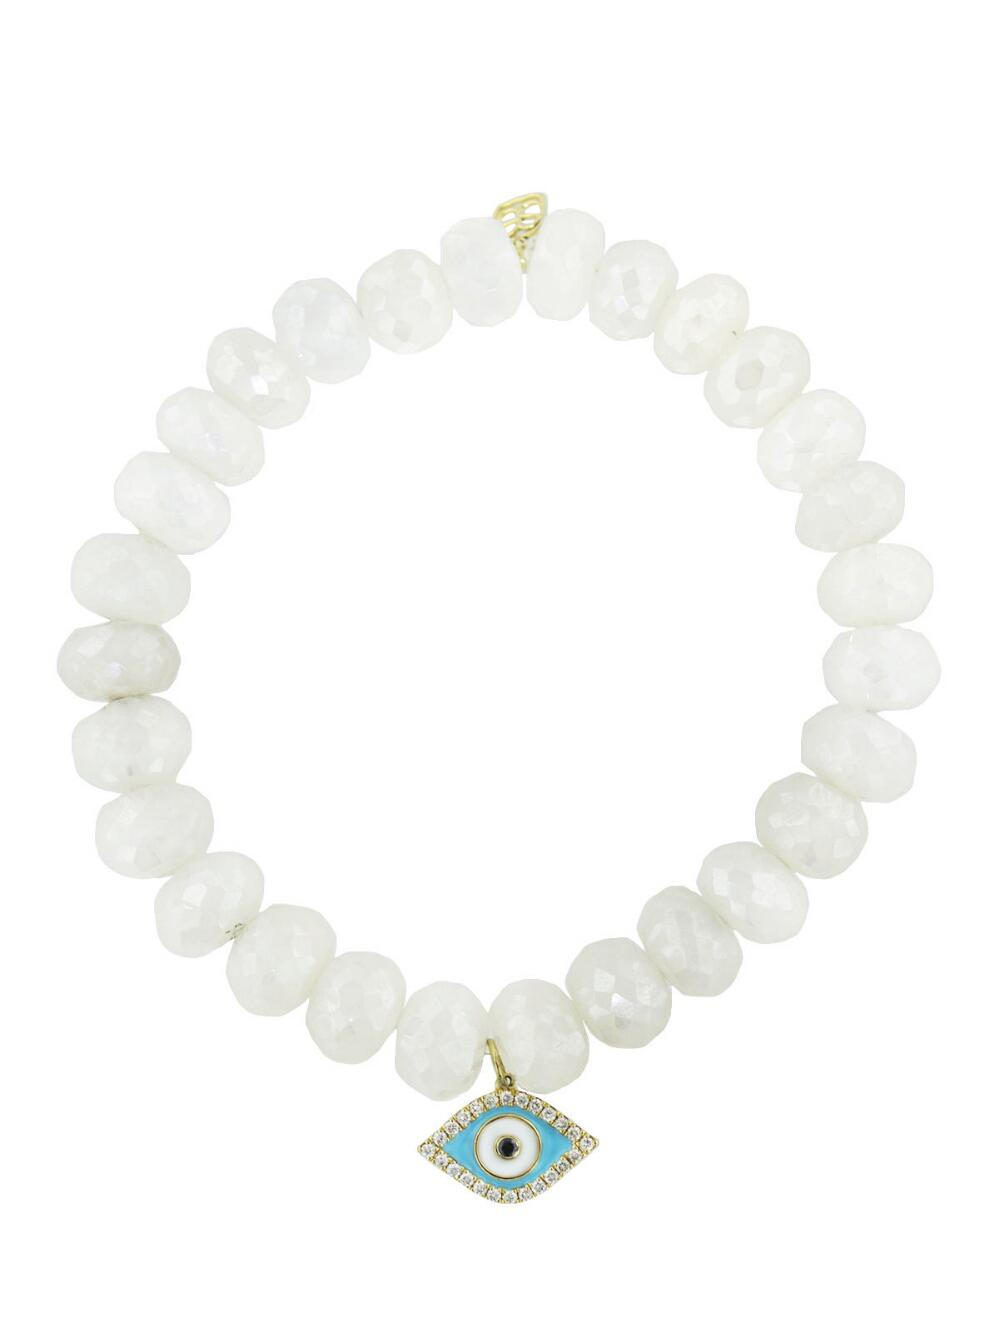 Sydney Evan 10mm Faceted Gray Chalcedony Bead Bracelet with 14k Gold Love Charm kWq86aG4